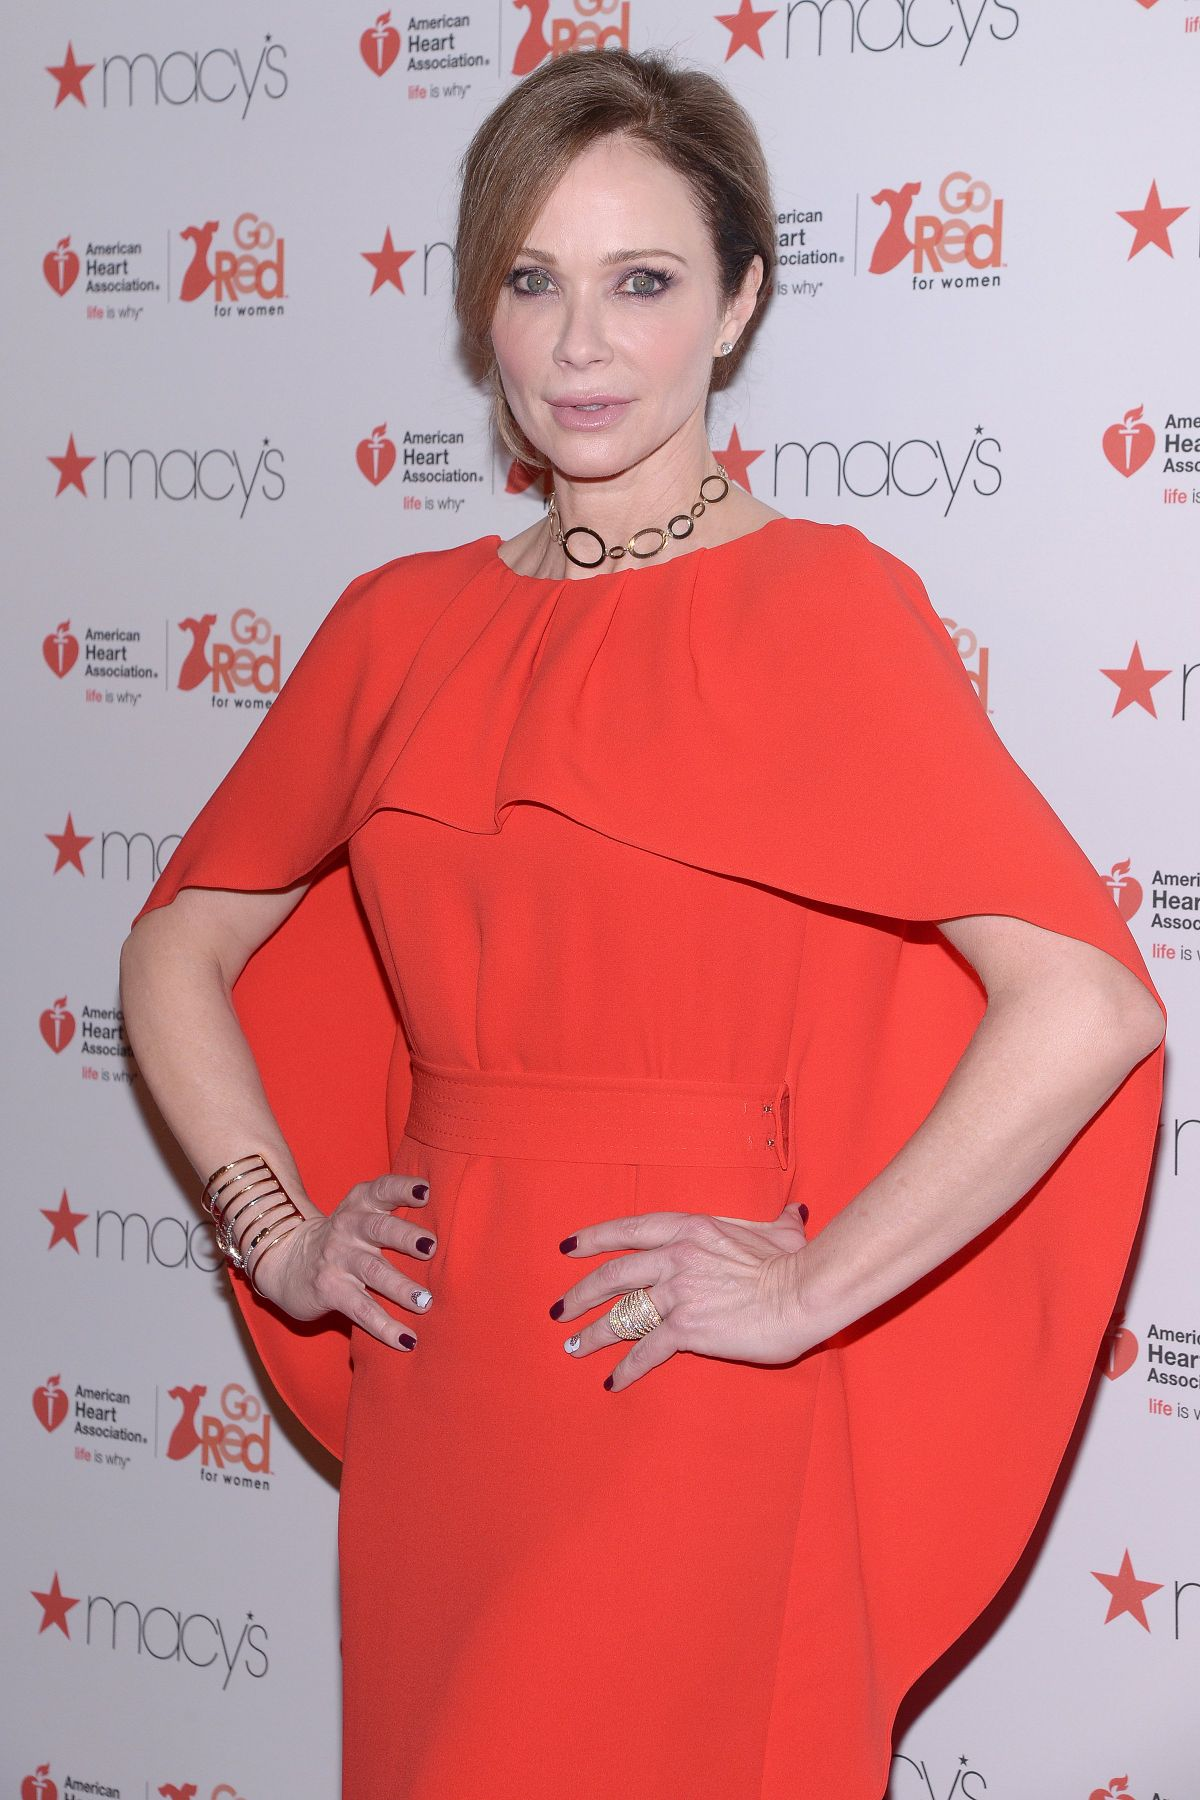 LAUREN HOLLY at American Heart Association's Go Red for Women Red Dress Collection 2017 in New York 02/09/2017